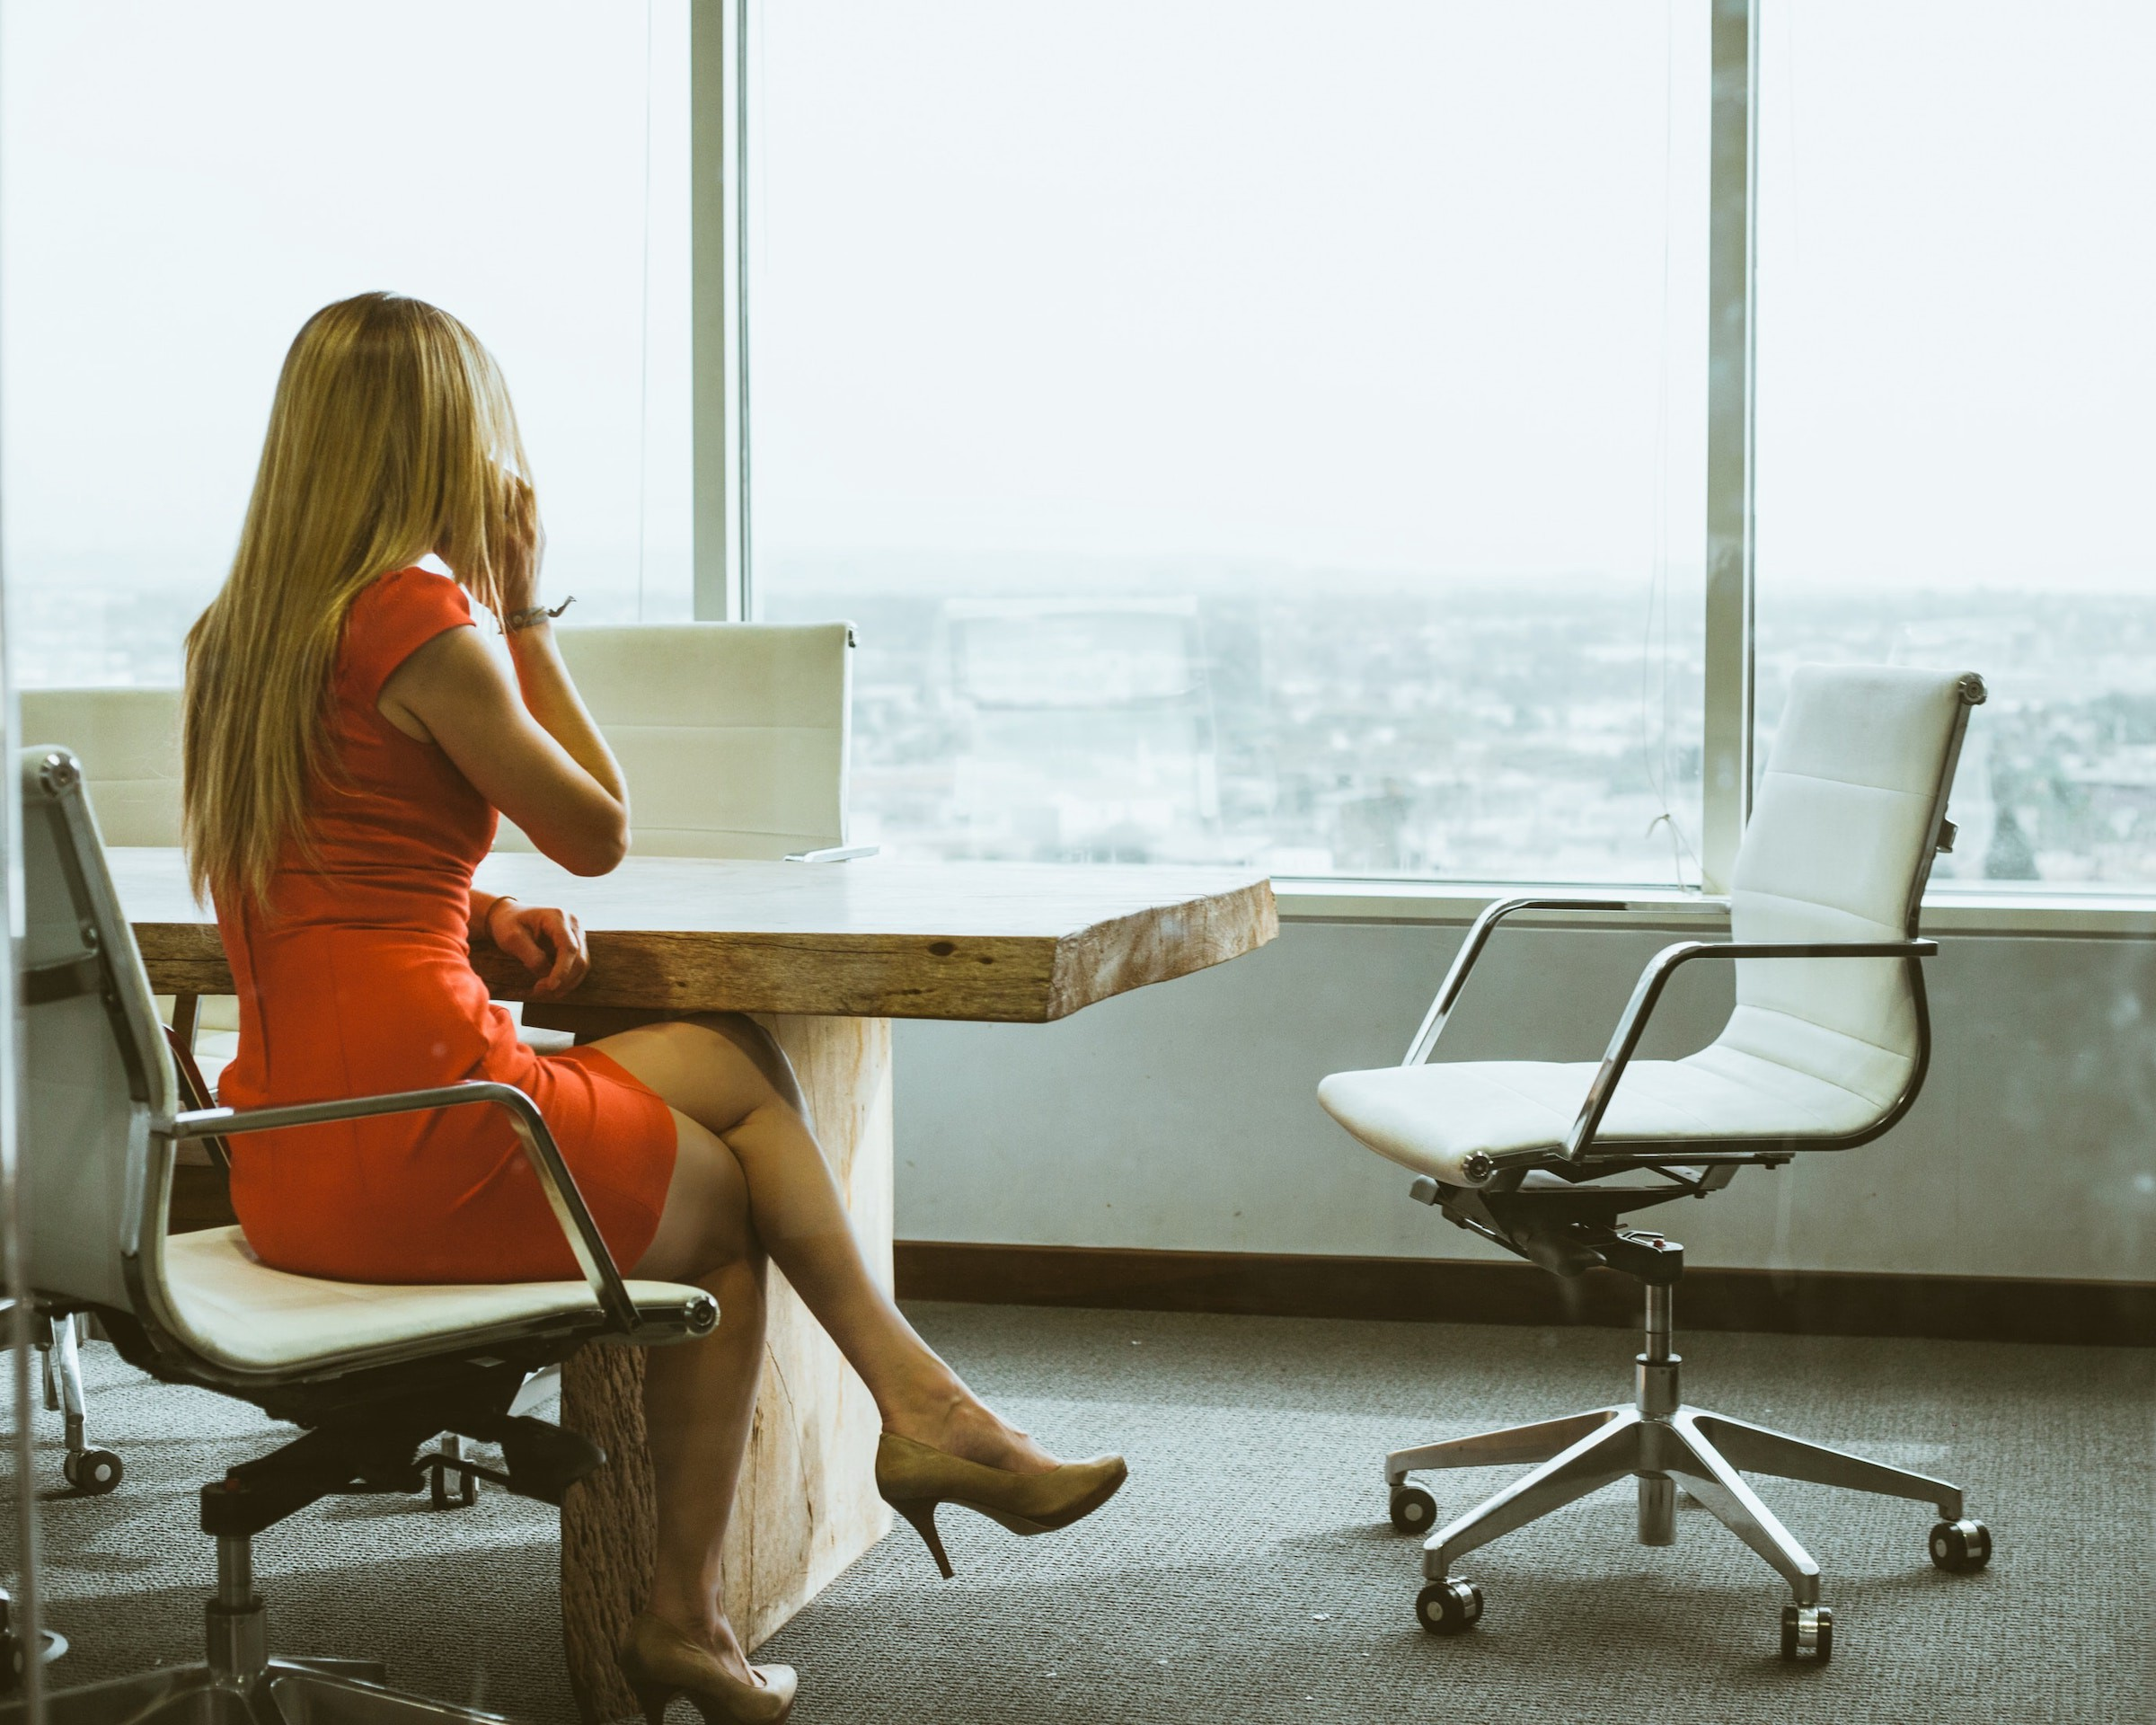 Office worker with their back to the camera while they talk on the phone in a conference room with large windows